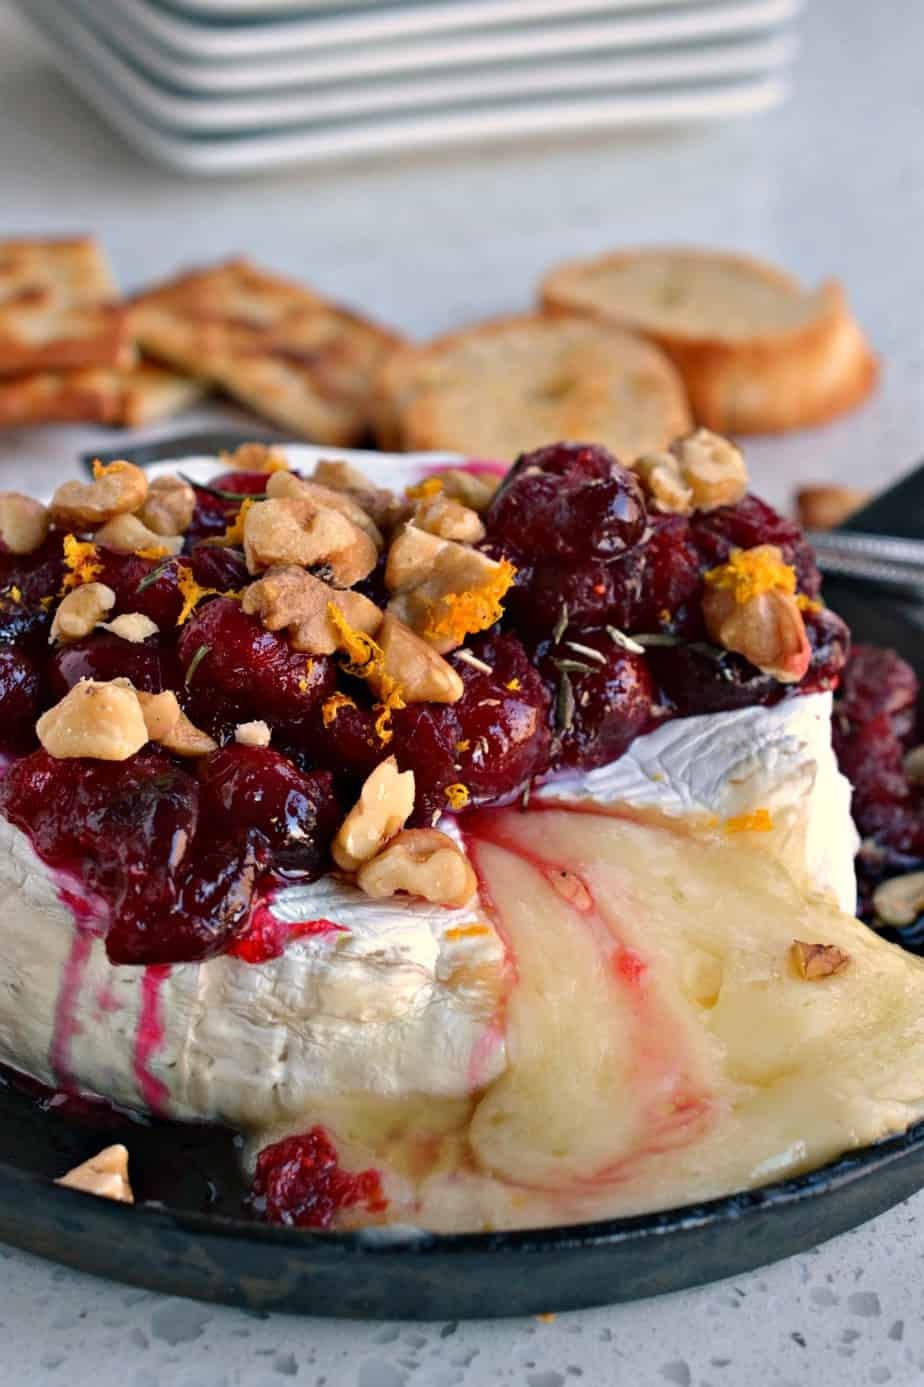 This Baked Brie with cranberries, walnuts, rosemary and honey is easy, elegant and flavorful.